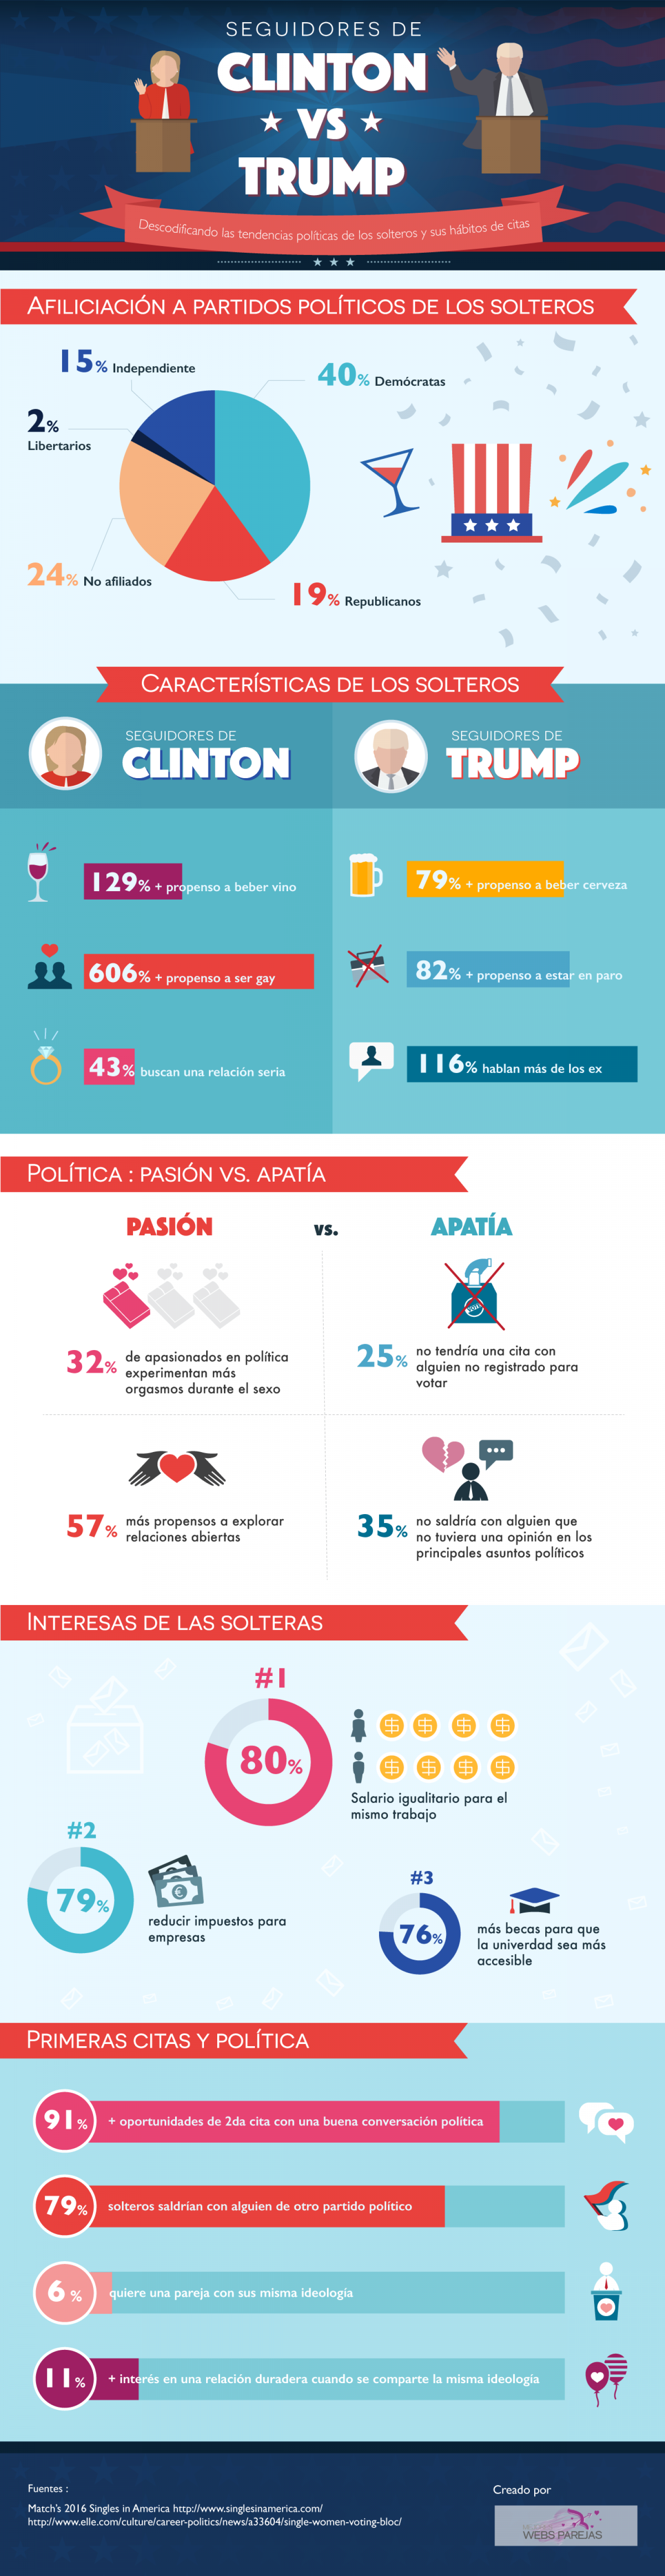 Dating habits & political views of American singles Infographic